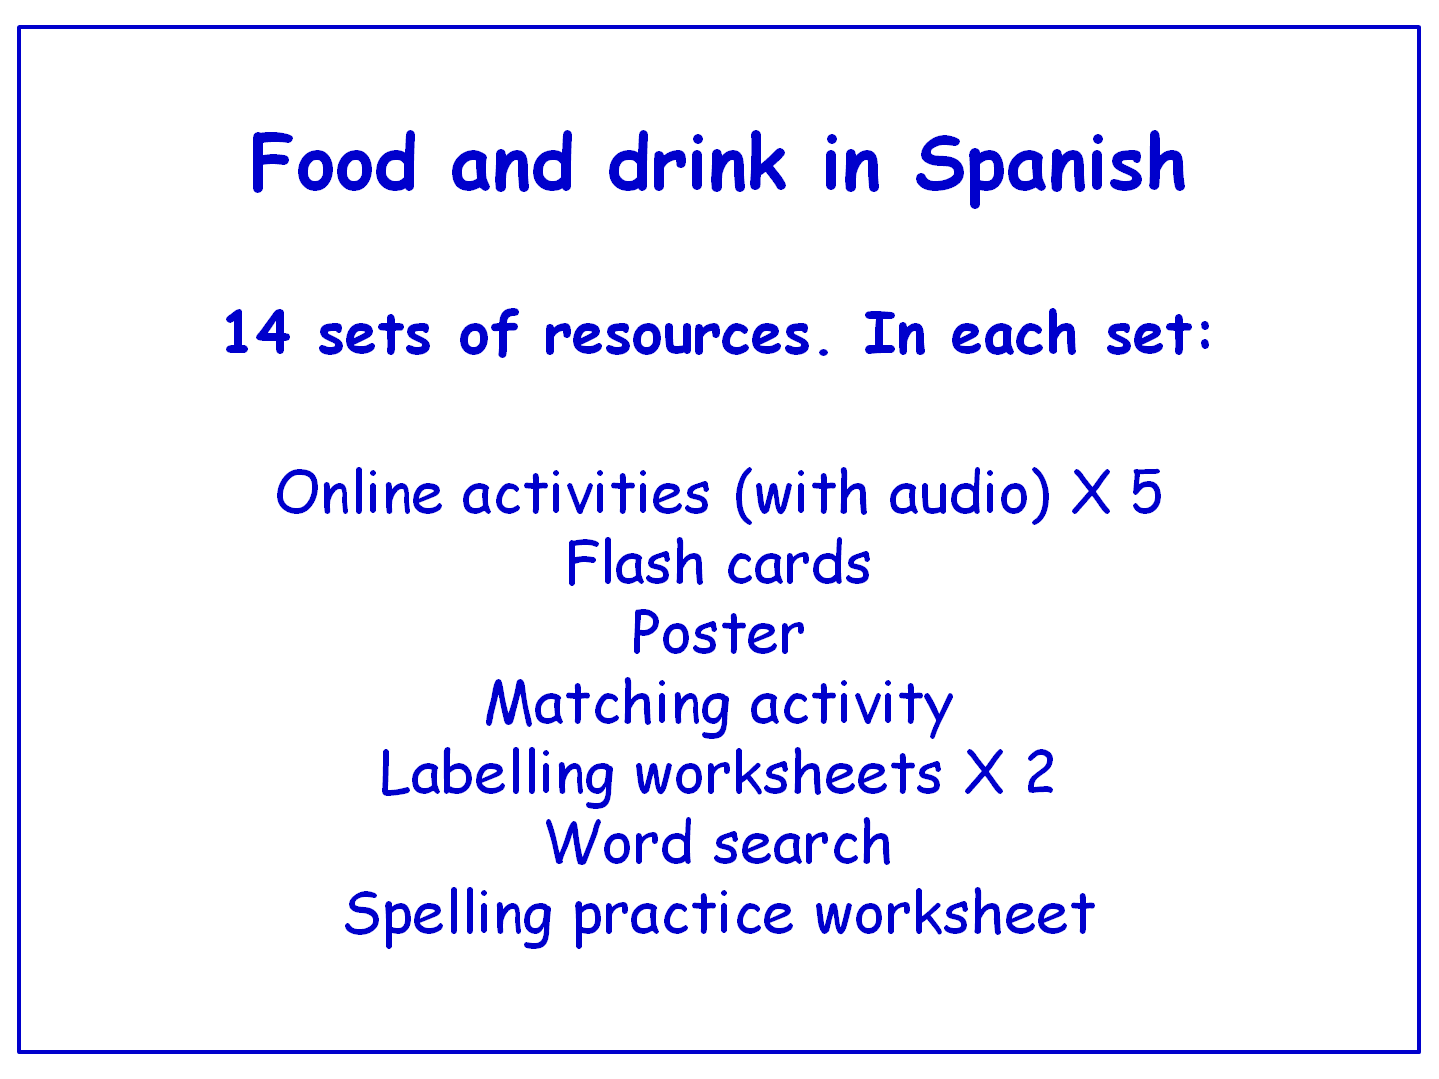 Workbooks spanish food worksheets : Food in Spanish Worksheets, Games, Activities and Flash Cards ...